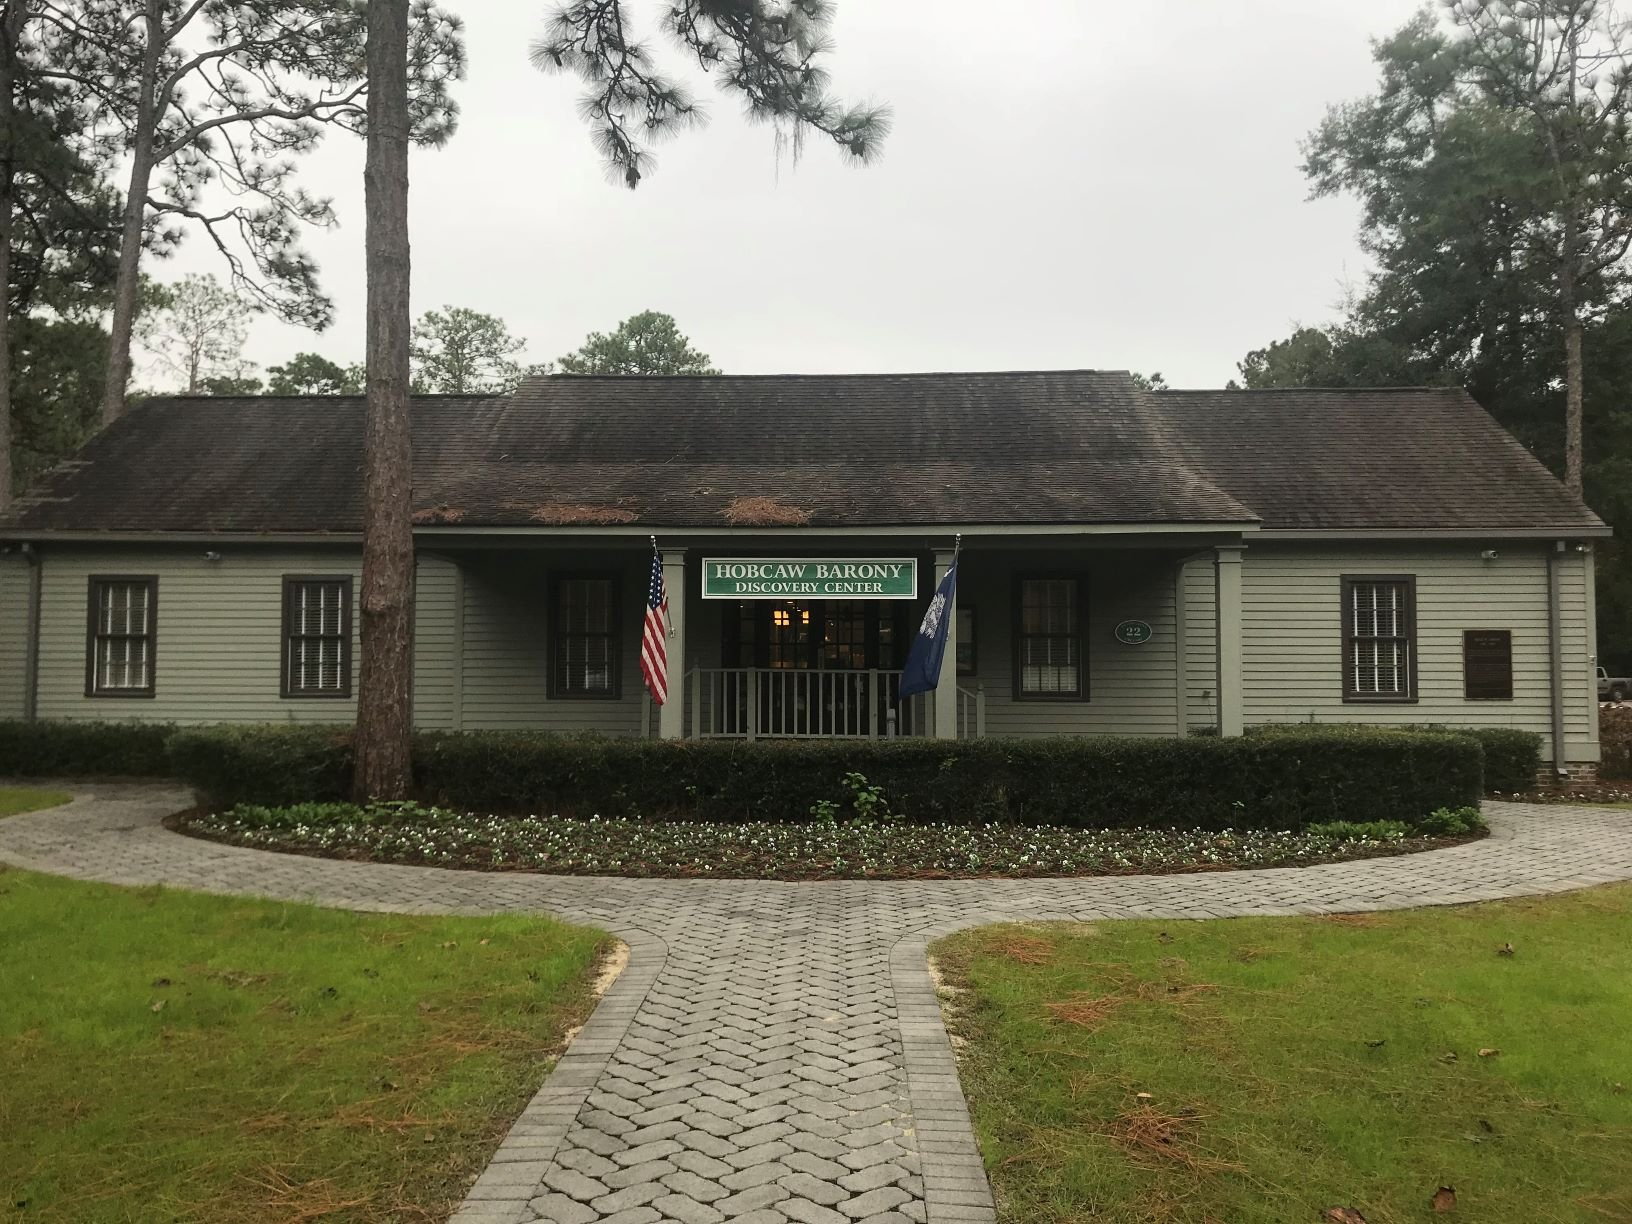 The Discovery Center is the first building visitors will encounter on the plantation.